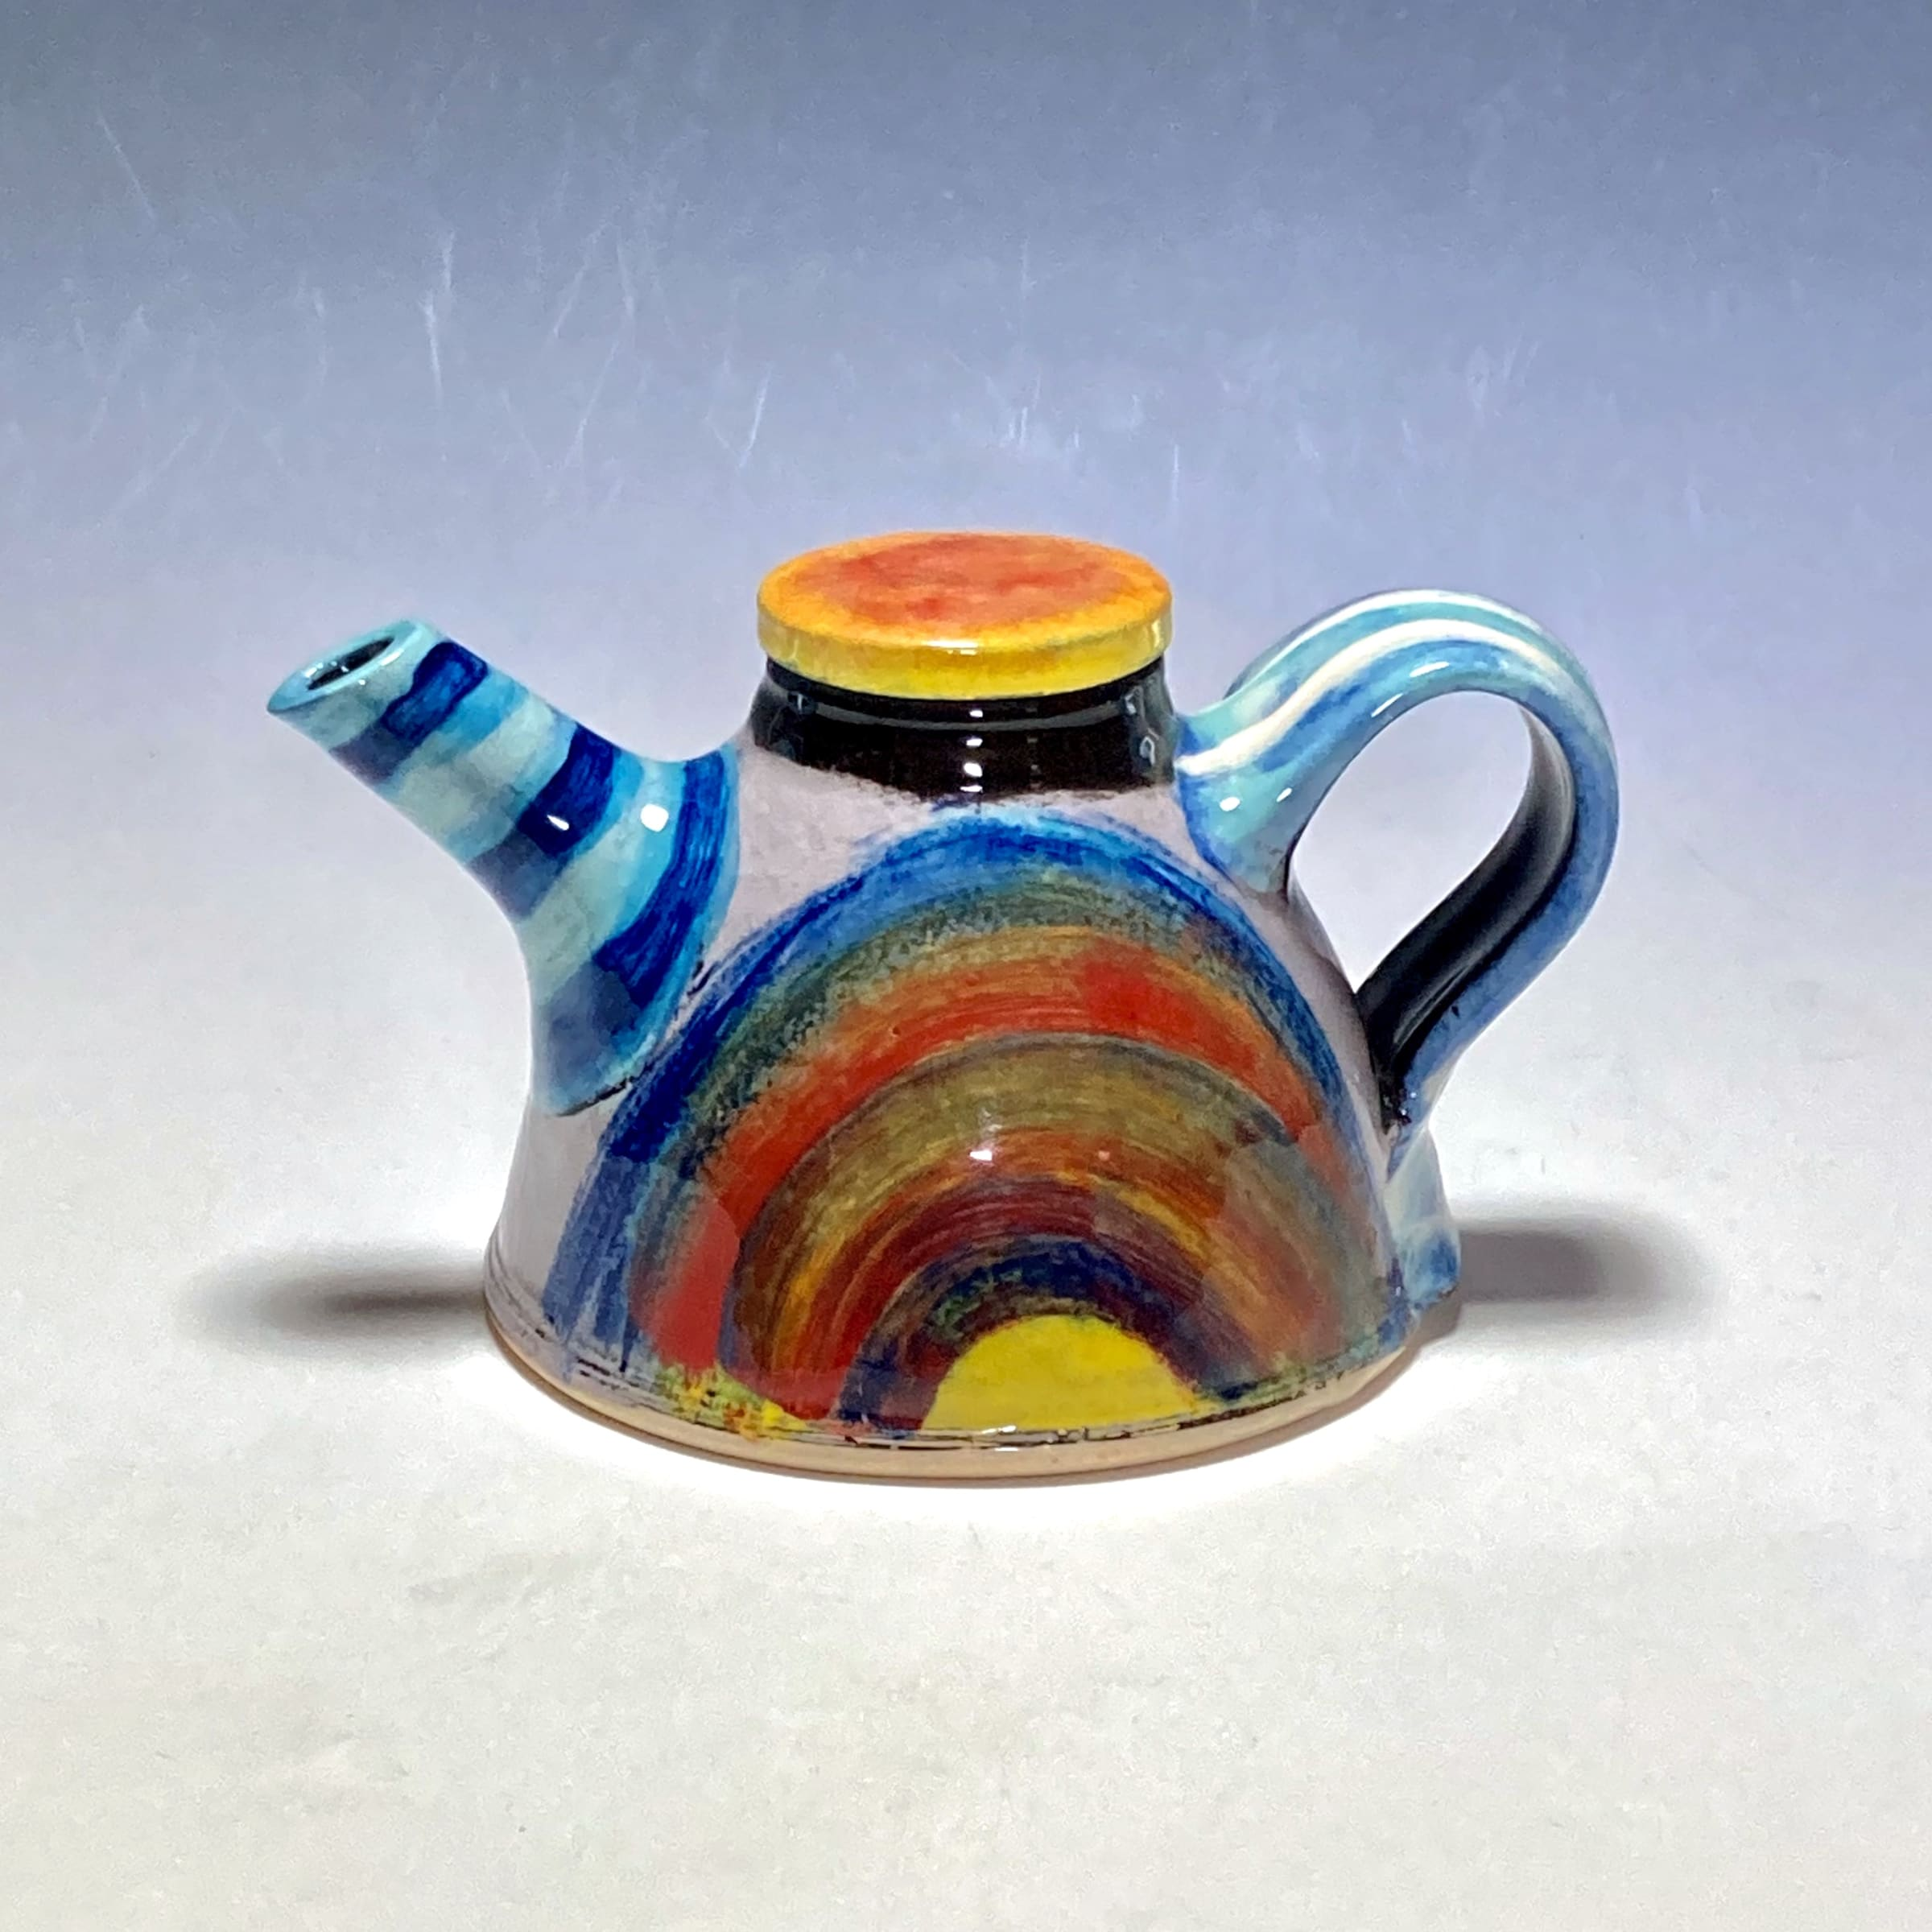 """<span class=""""link fancybox-details-link""""><a href=""""/artists/100-john-pollex/works/7850-john-pollex-teapot-2021/"""">View Detail Page</a></span><div class=""""artist""""><strong>John Pollex</strong></div> <div class=""""title""""><em>Teapot</em>, 2021</div> <div class=""""signed_and_dated"""">impressed with the artist's seal mark 'JP'</div> <div class=""""medium"""">white earthenware decorated with coloured slips</div> <div class=""""dimensions"""">height. 11 cm x diameter. 13 cm</div><div class=""""copyright_line"""">Own Art: £22 x 10 Months, 0% APR</div>"""